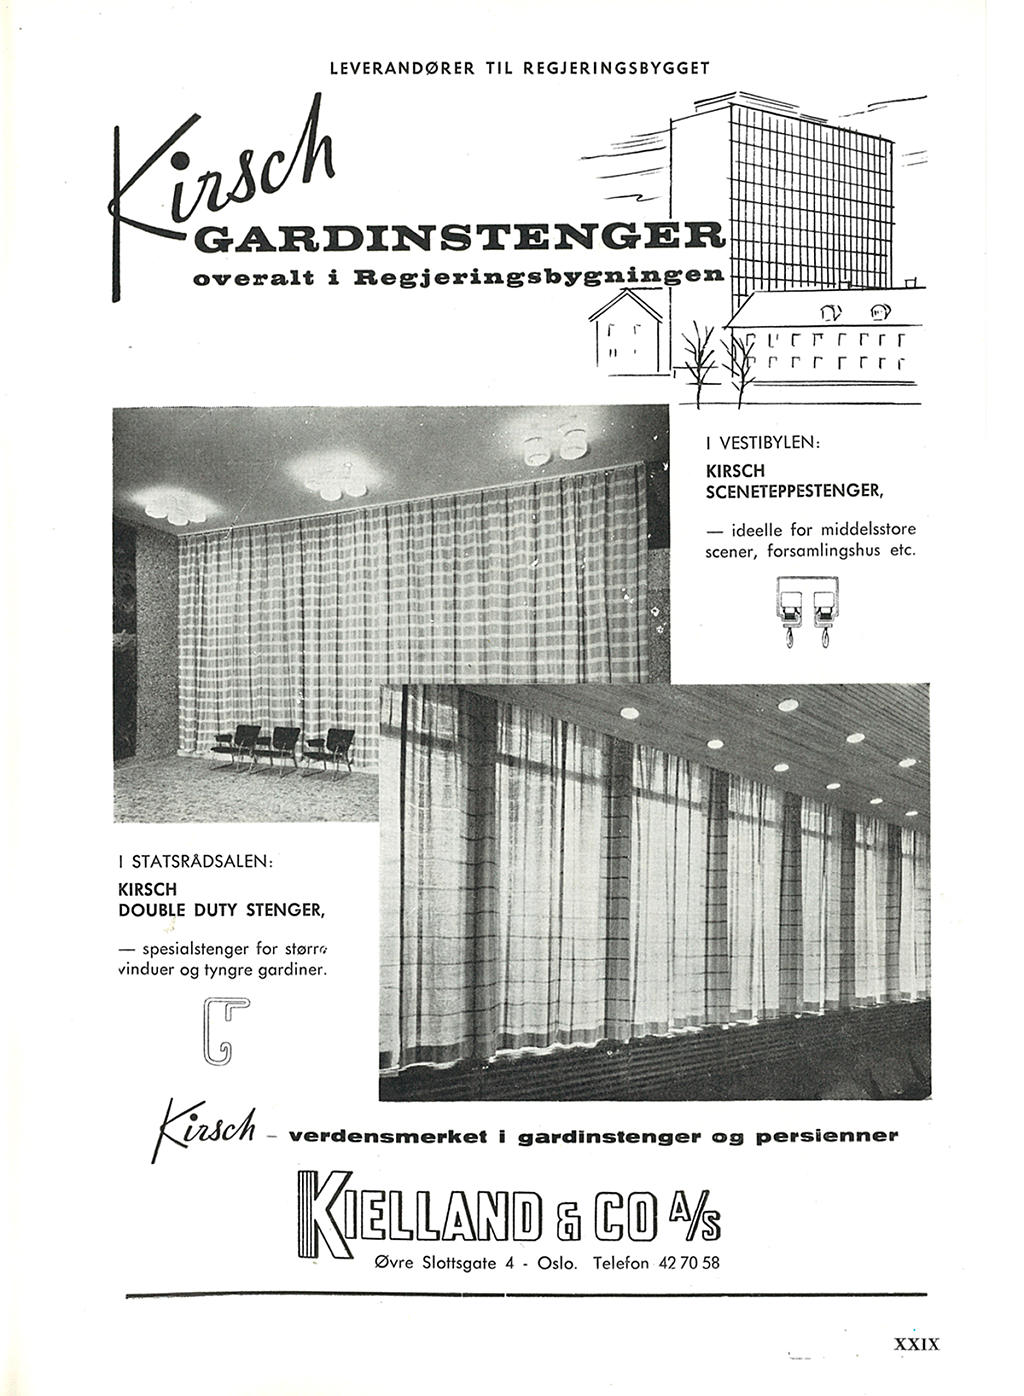 Kirsch gardinstenger fra Kielland & co AS